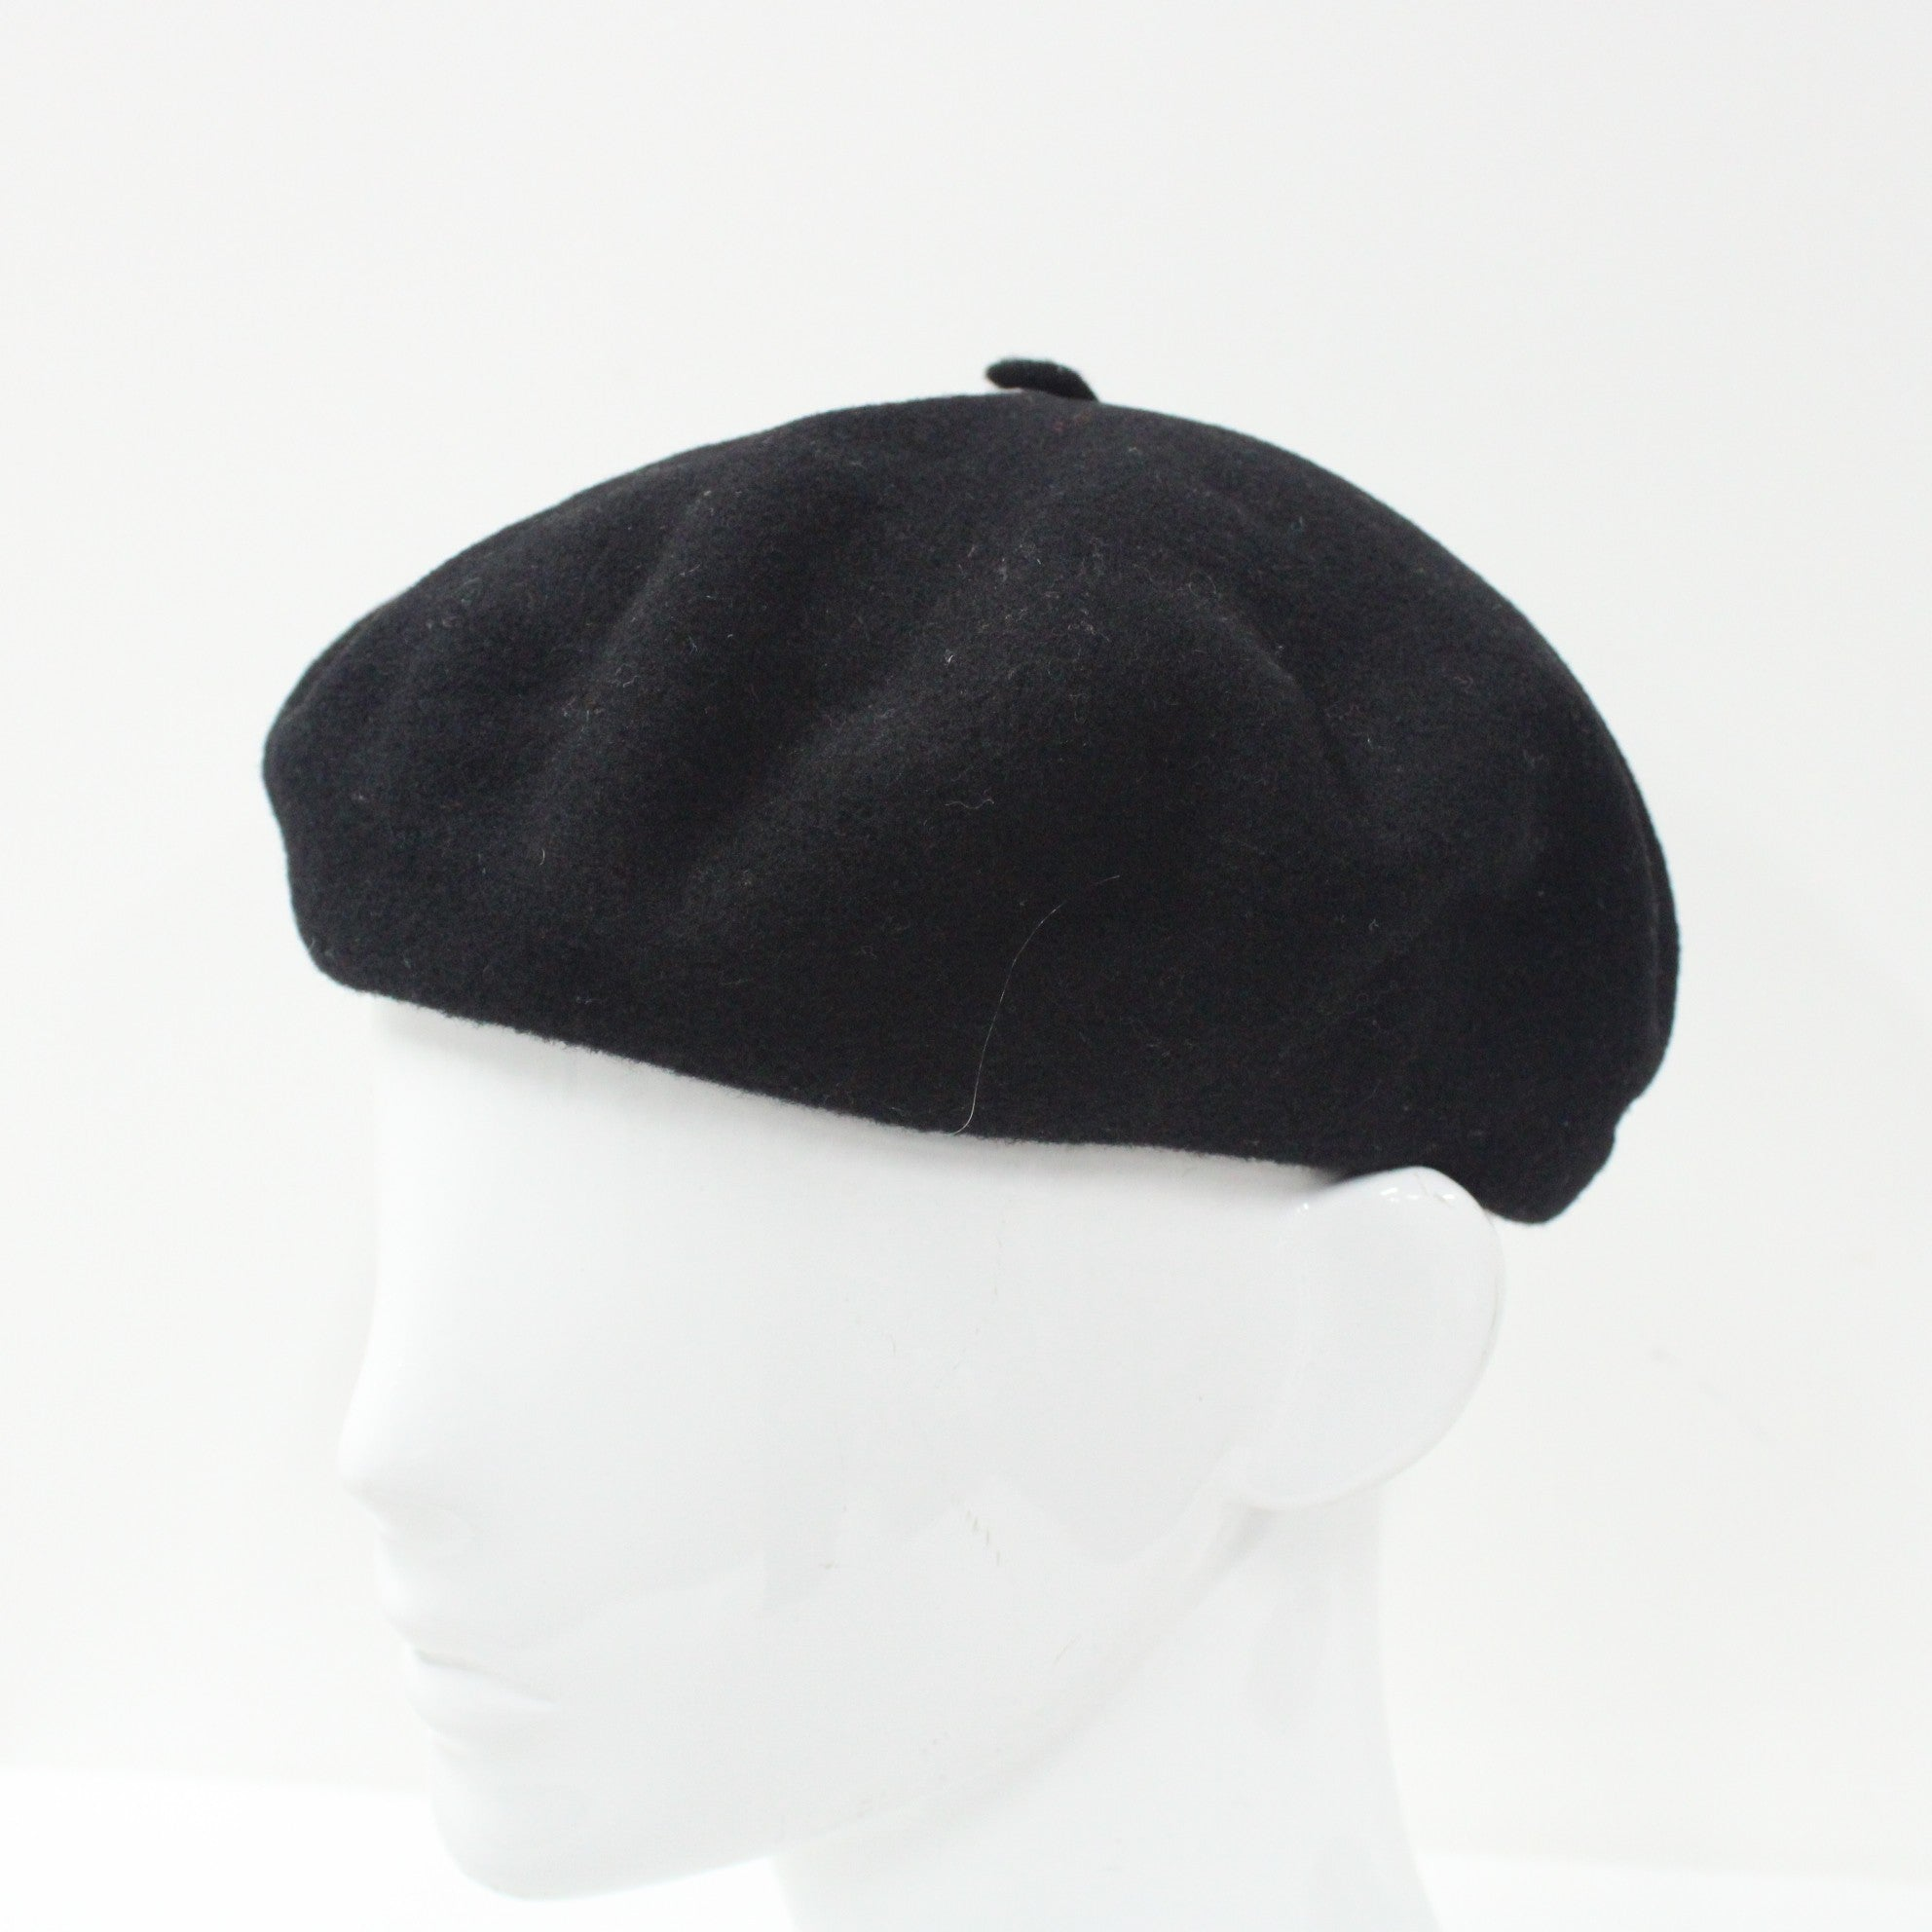 b5bffea59 Kangol Black Beret (Size M) 100% Wool Designed In Britain #452